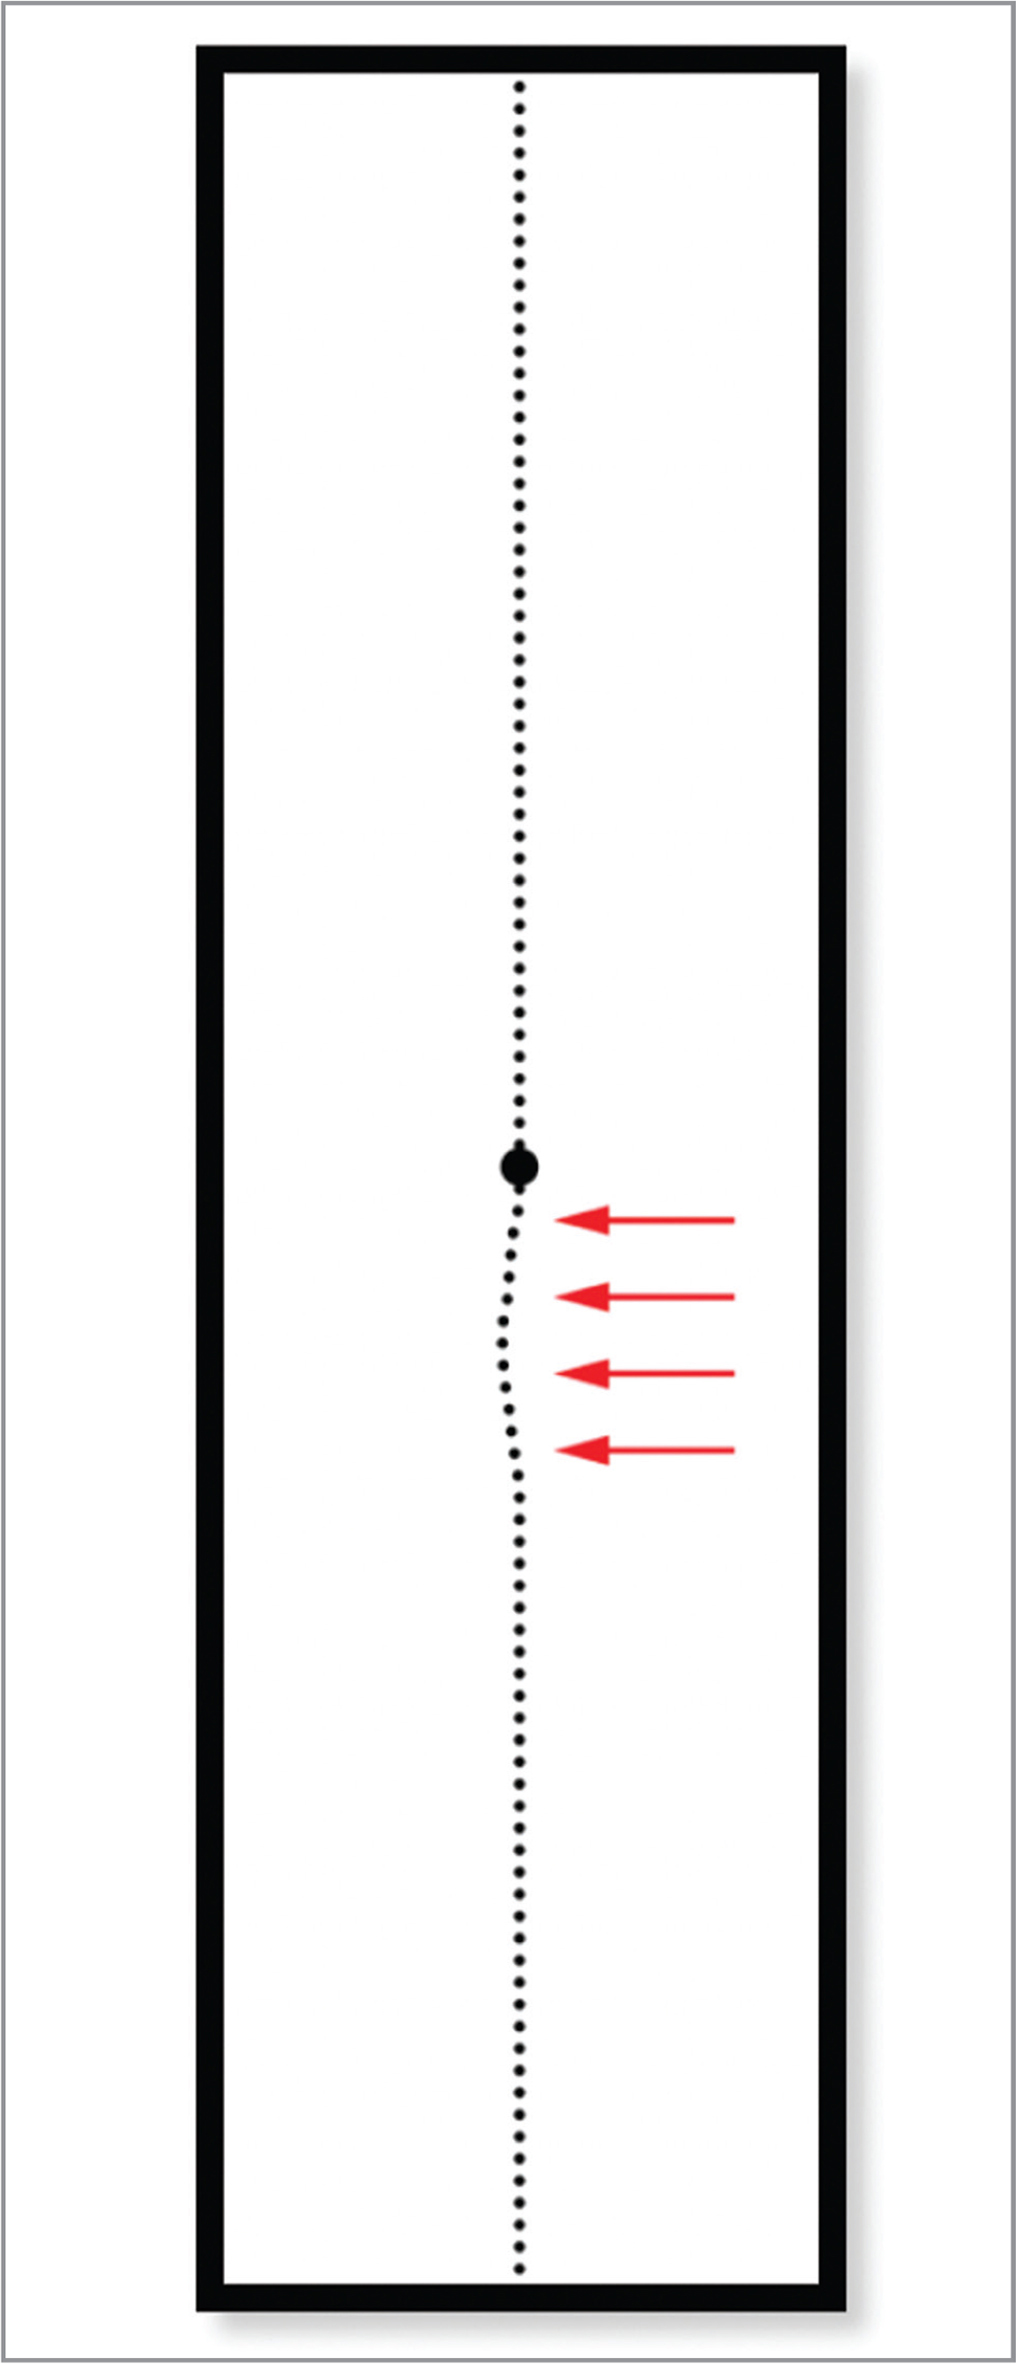 "Screenshot of the adjustments made to a vertical line by a subject with epiretinal membrane of the right eye, after which the subject reported the line appeared ""perfectly straight"" (manipulated area under the curve = 0.5, M-CHARTS score = 0.3). Red arrows are displayed to highlight the adjusted area."